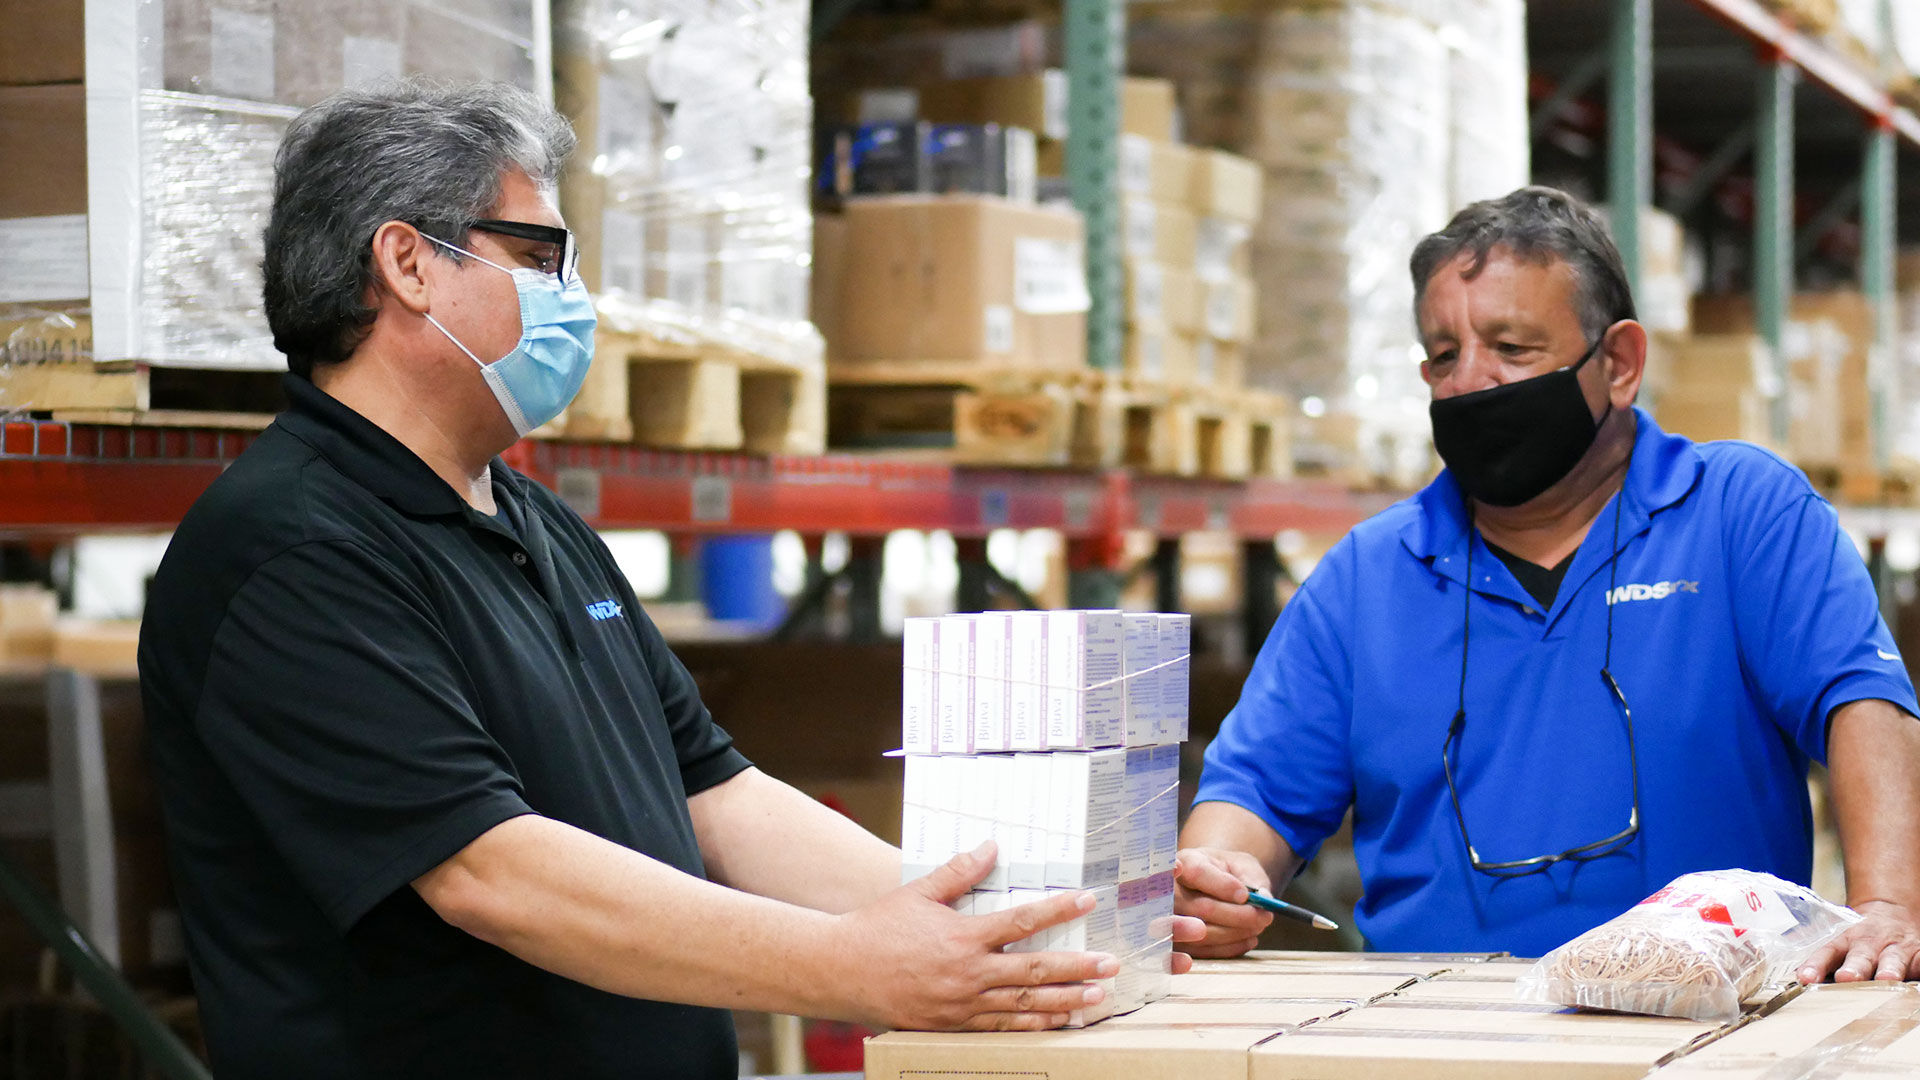 Employees at a Pharmaceutical Logistics Industry pick orders to supply a client's demand.